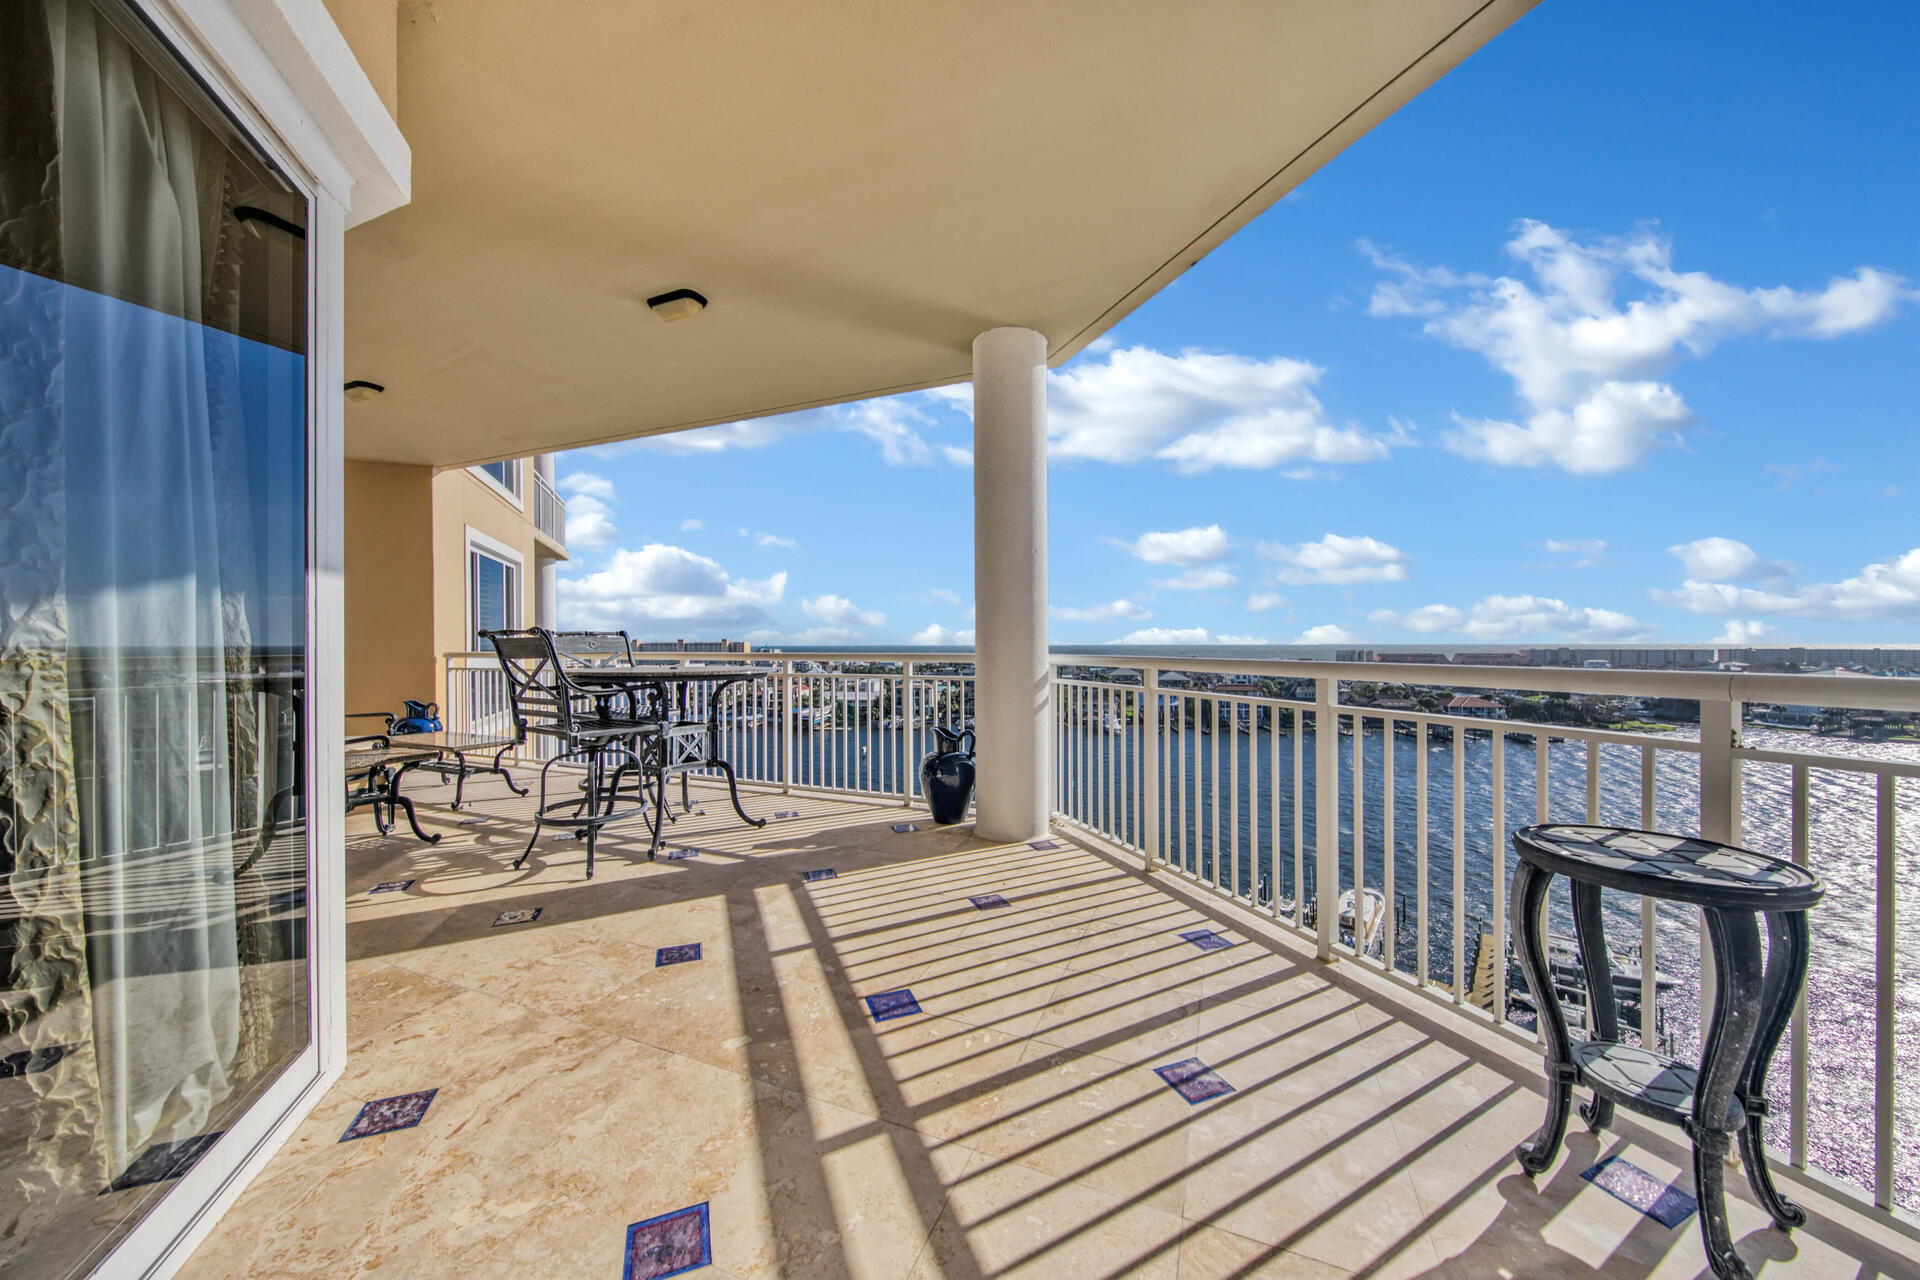 Balcony in Grand Harbor condo